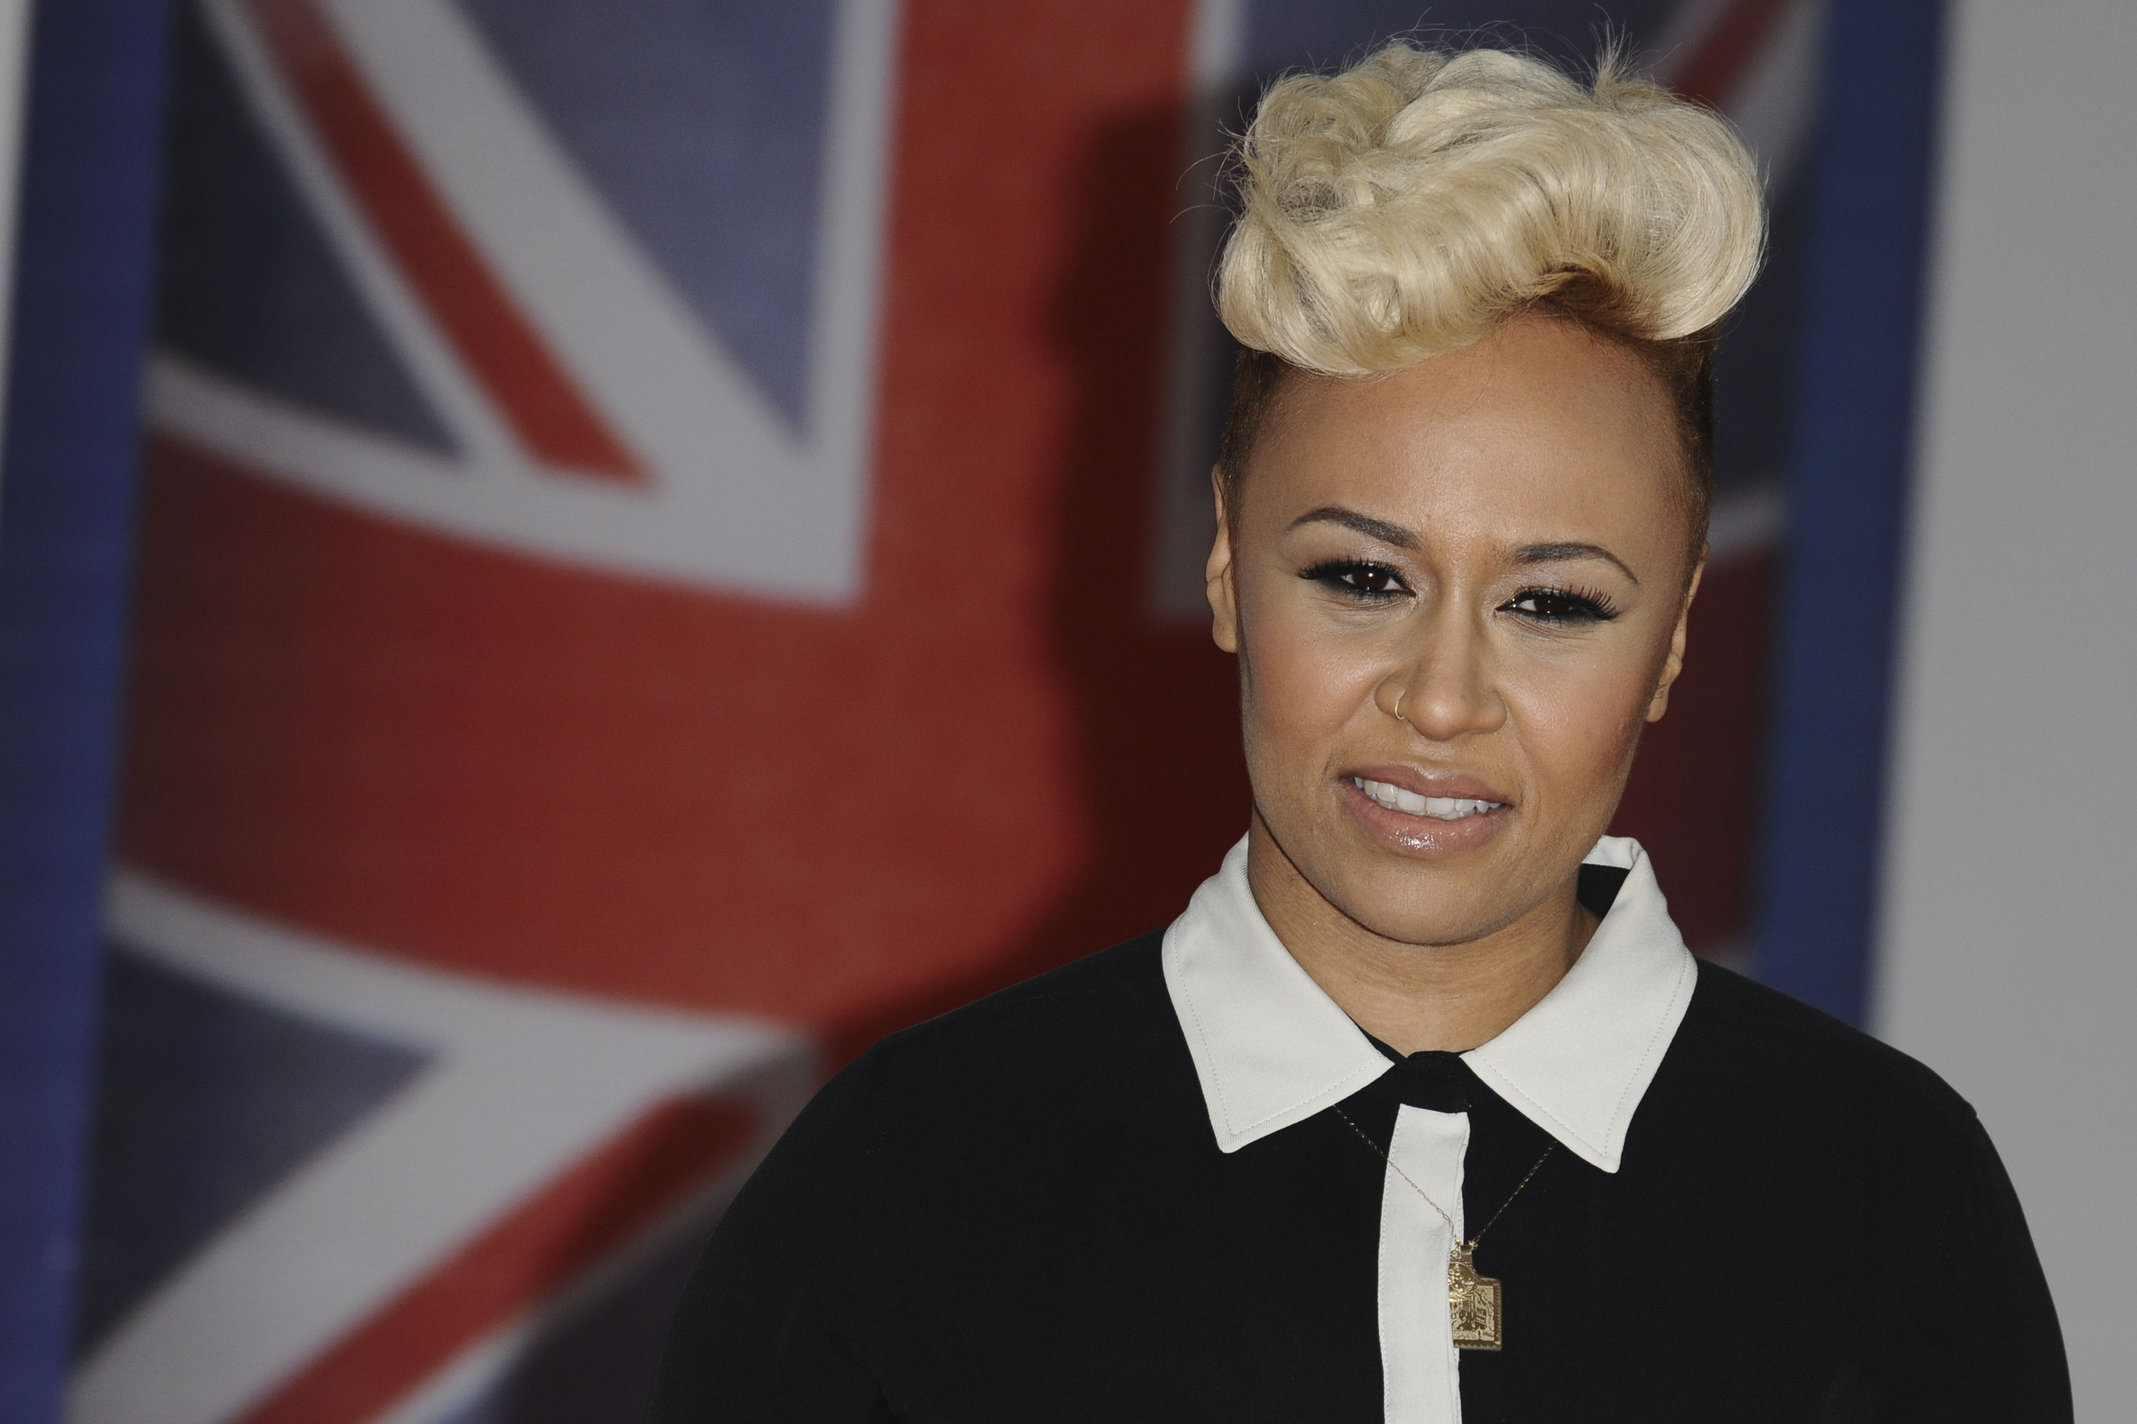 Liam Gallagher, Liam Fray and Emeli Sande lead Together in One Voice singalong